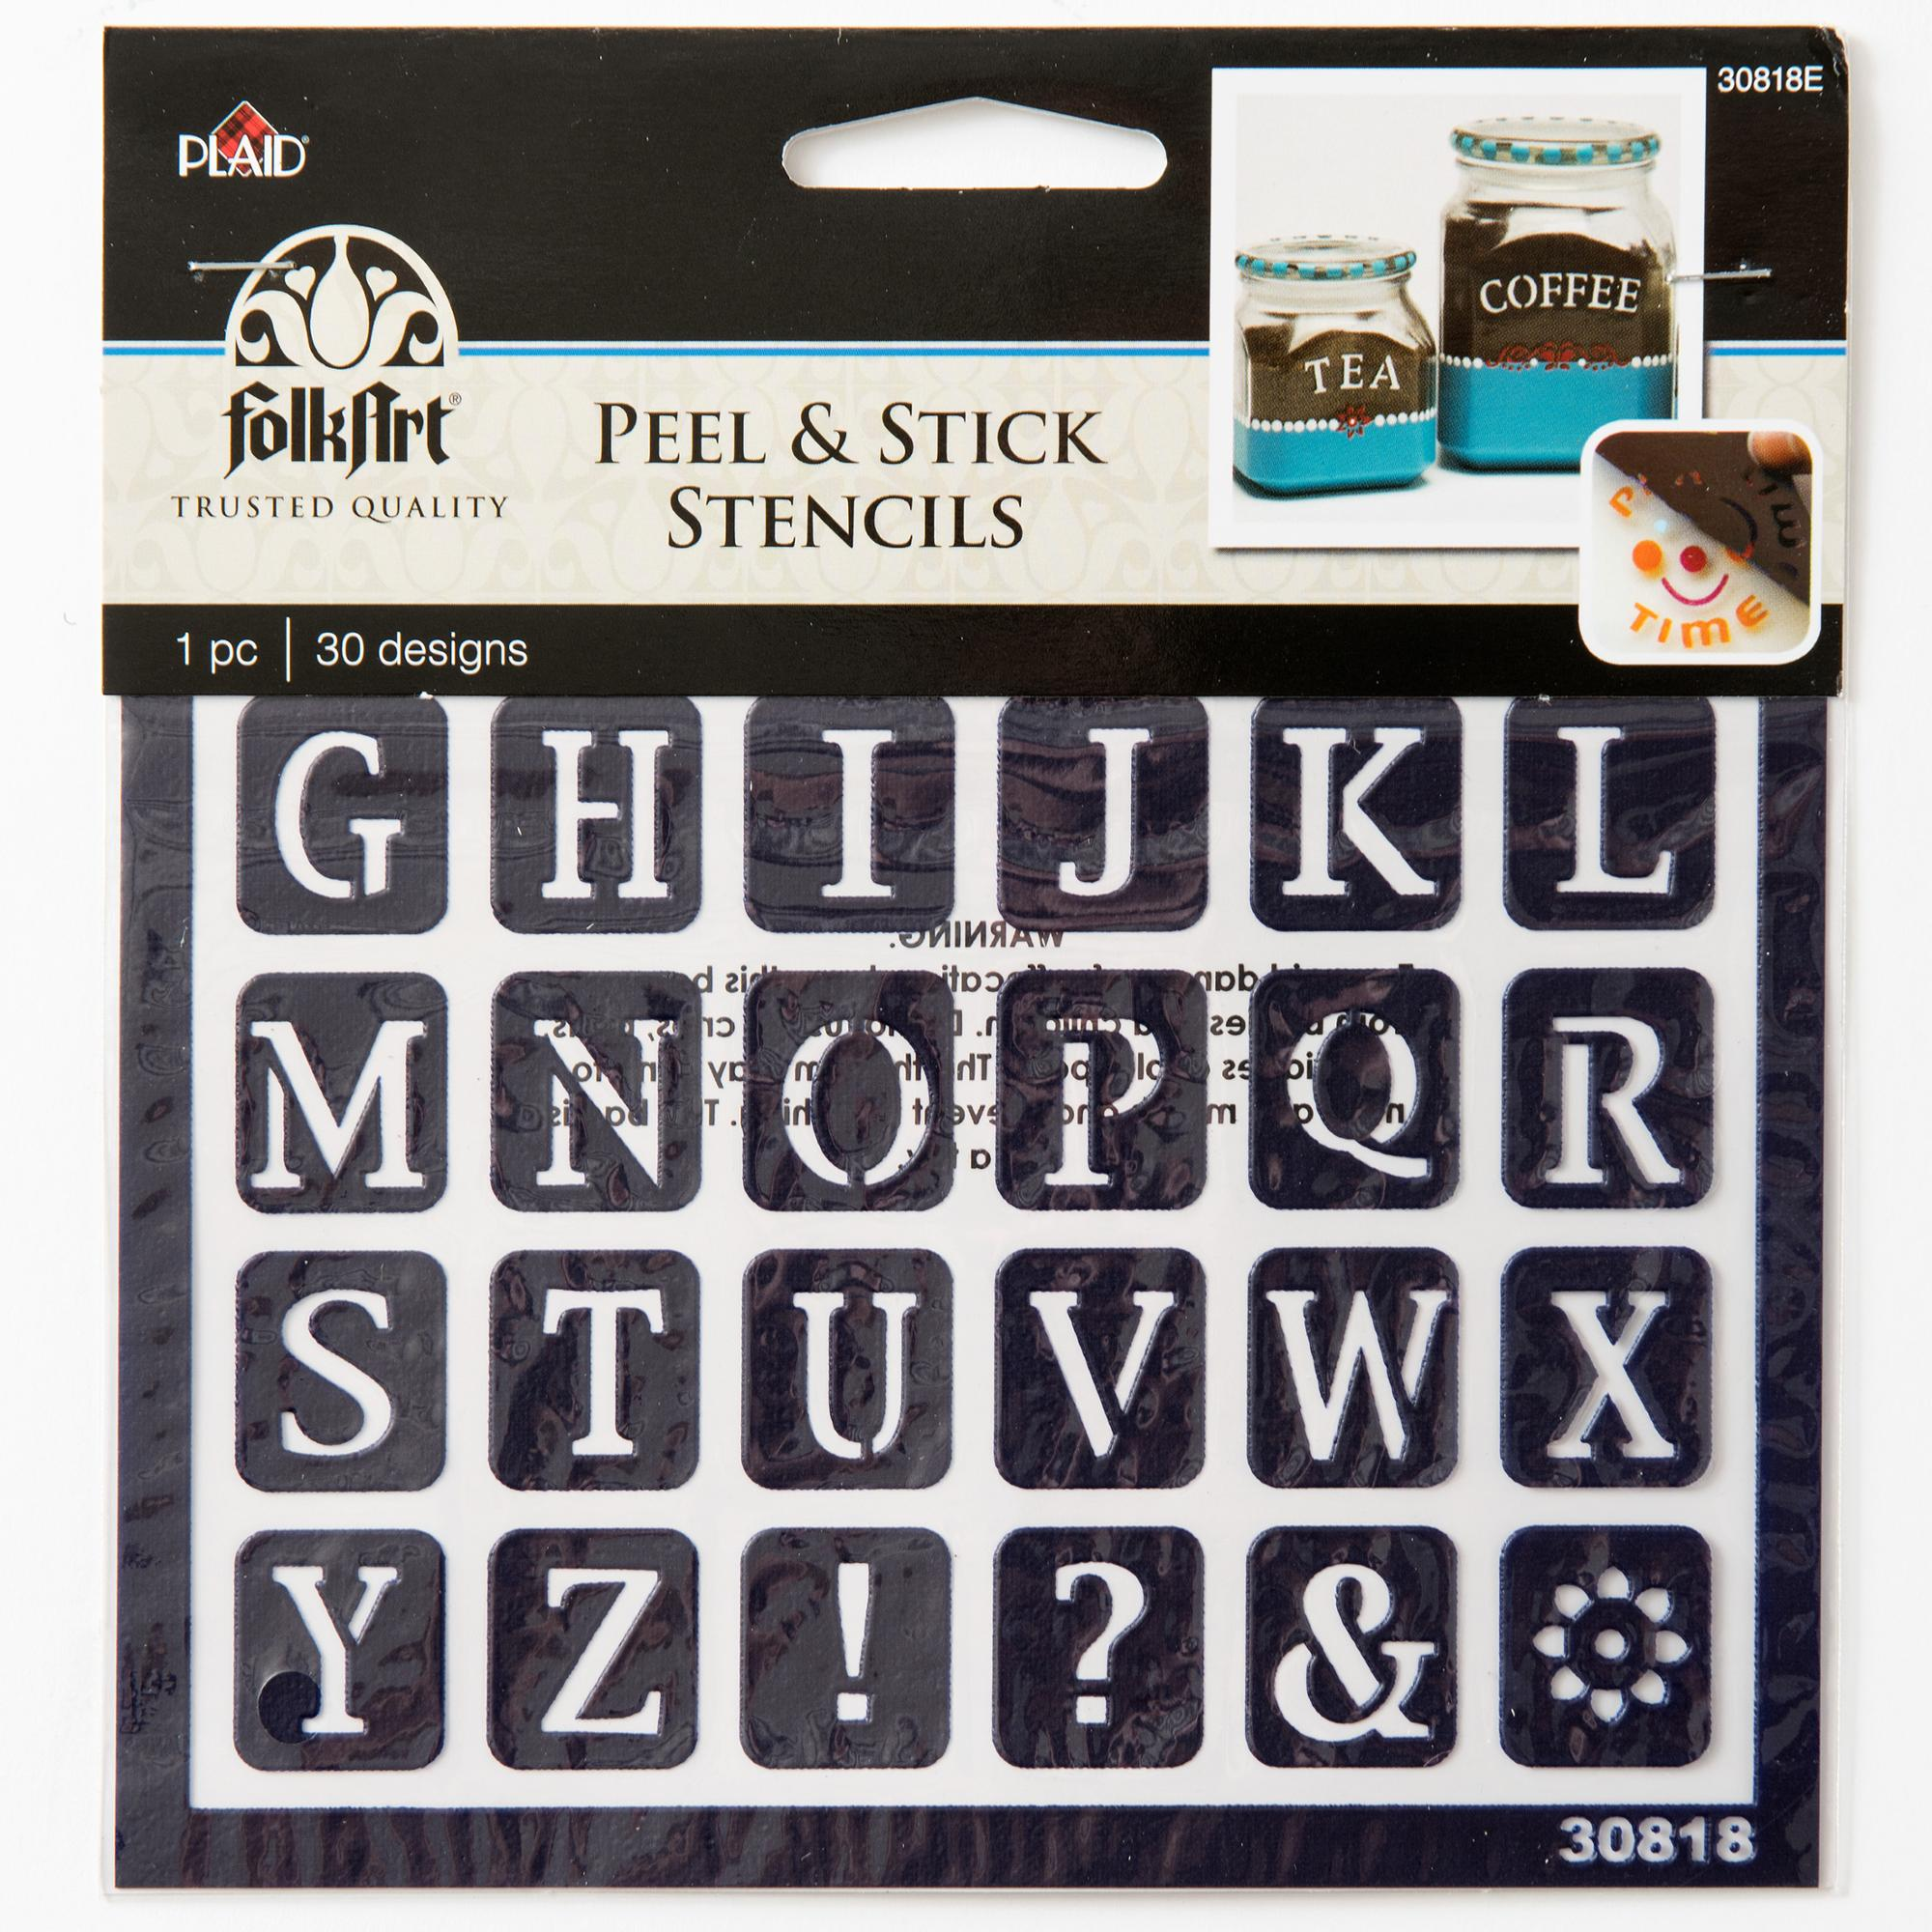 "FolkArt Peel & Stick Painting Stencils by Plaid, Old School Alphabet, 6"" x 5½"" Sheet, 30 Designs"